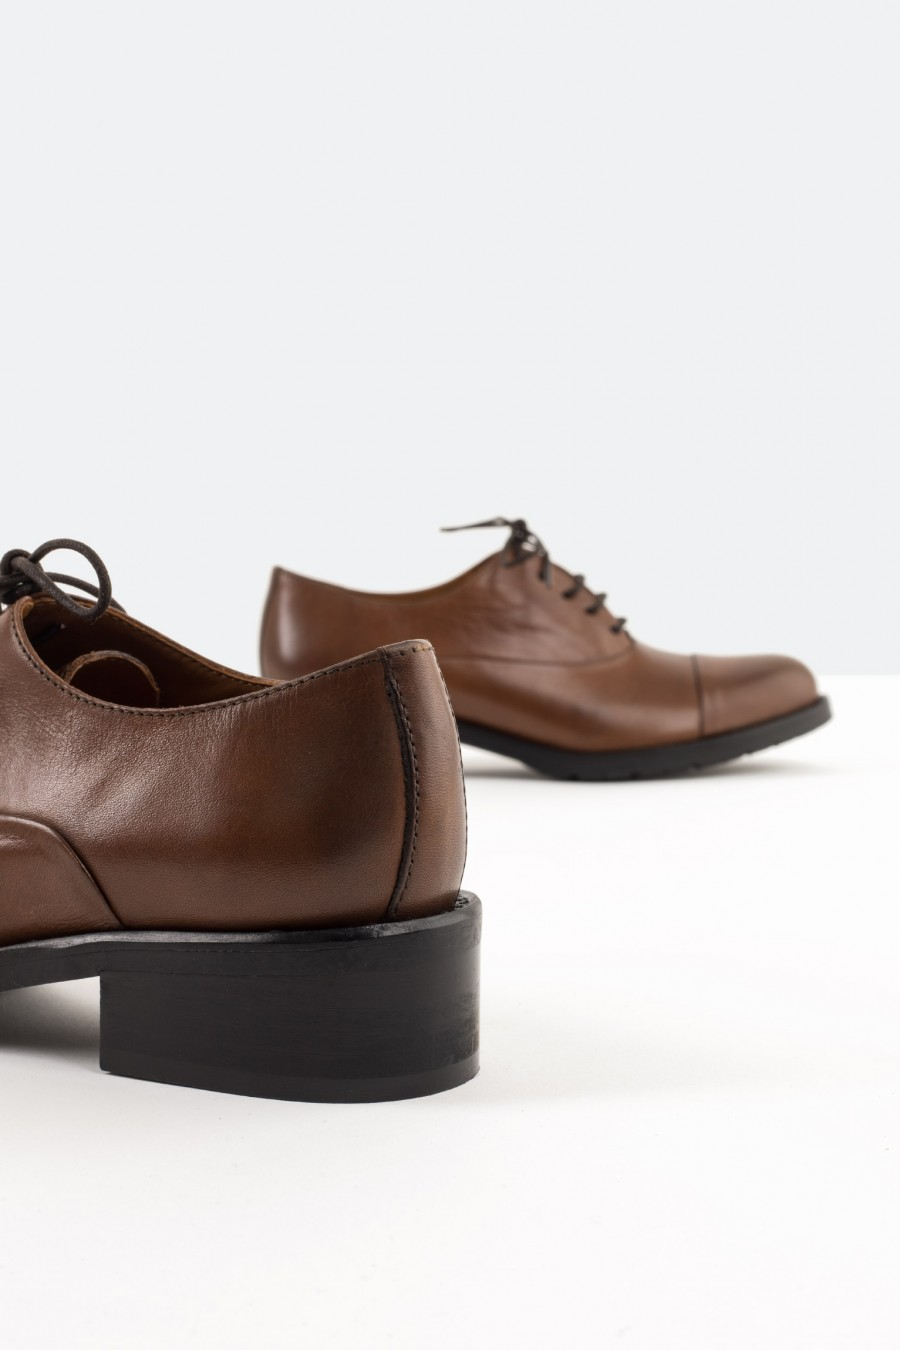 Italian leather brown derby shoes